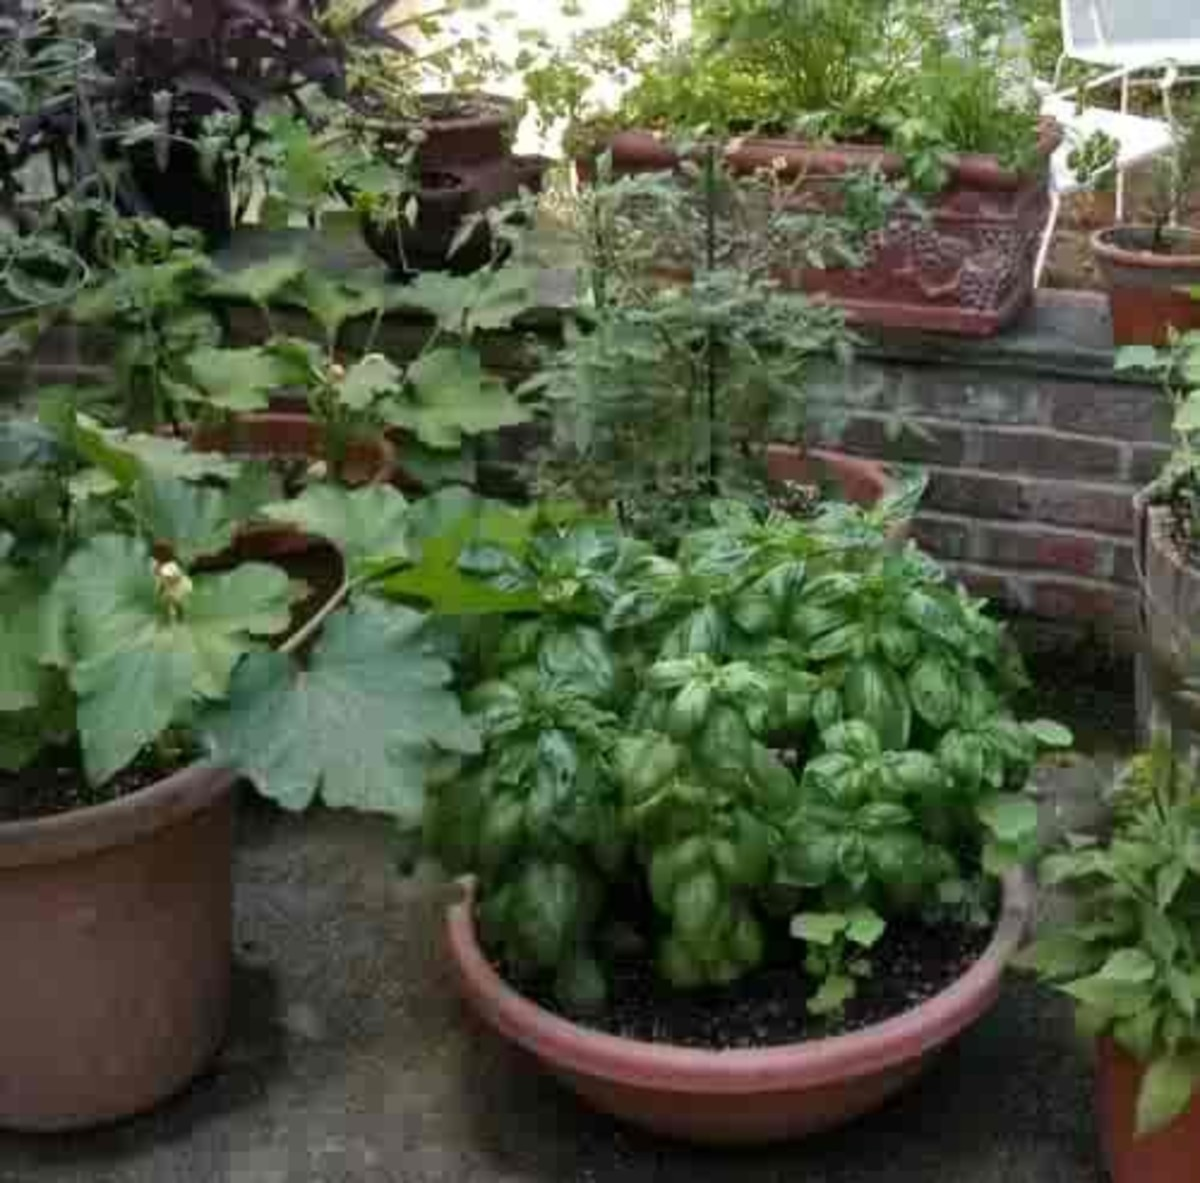 Growing ve ables in containers can be a bit difficult for first time gardeners Even very experienced gardeners still have trouble from time to time